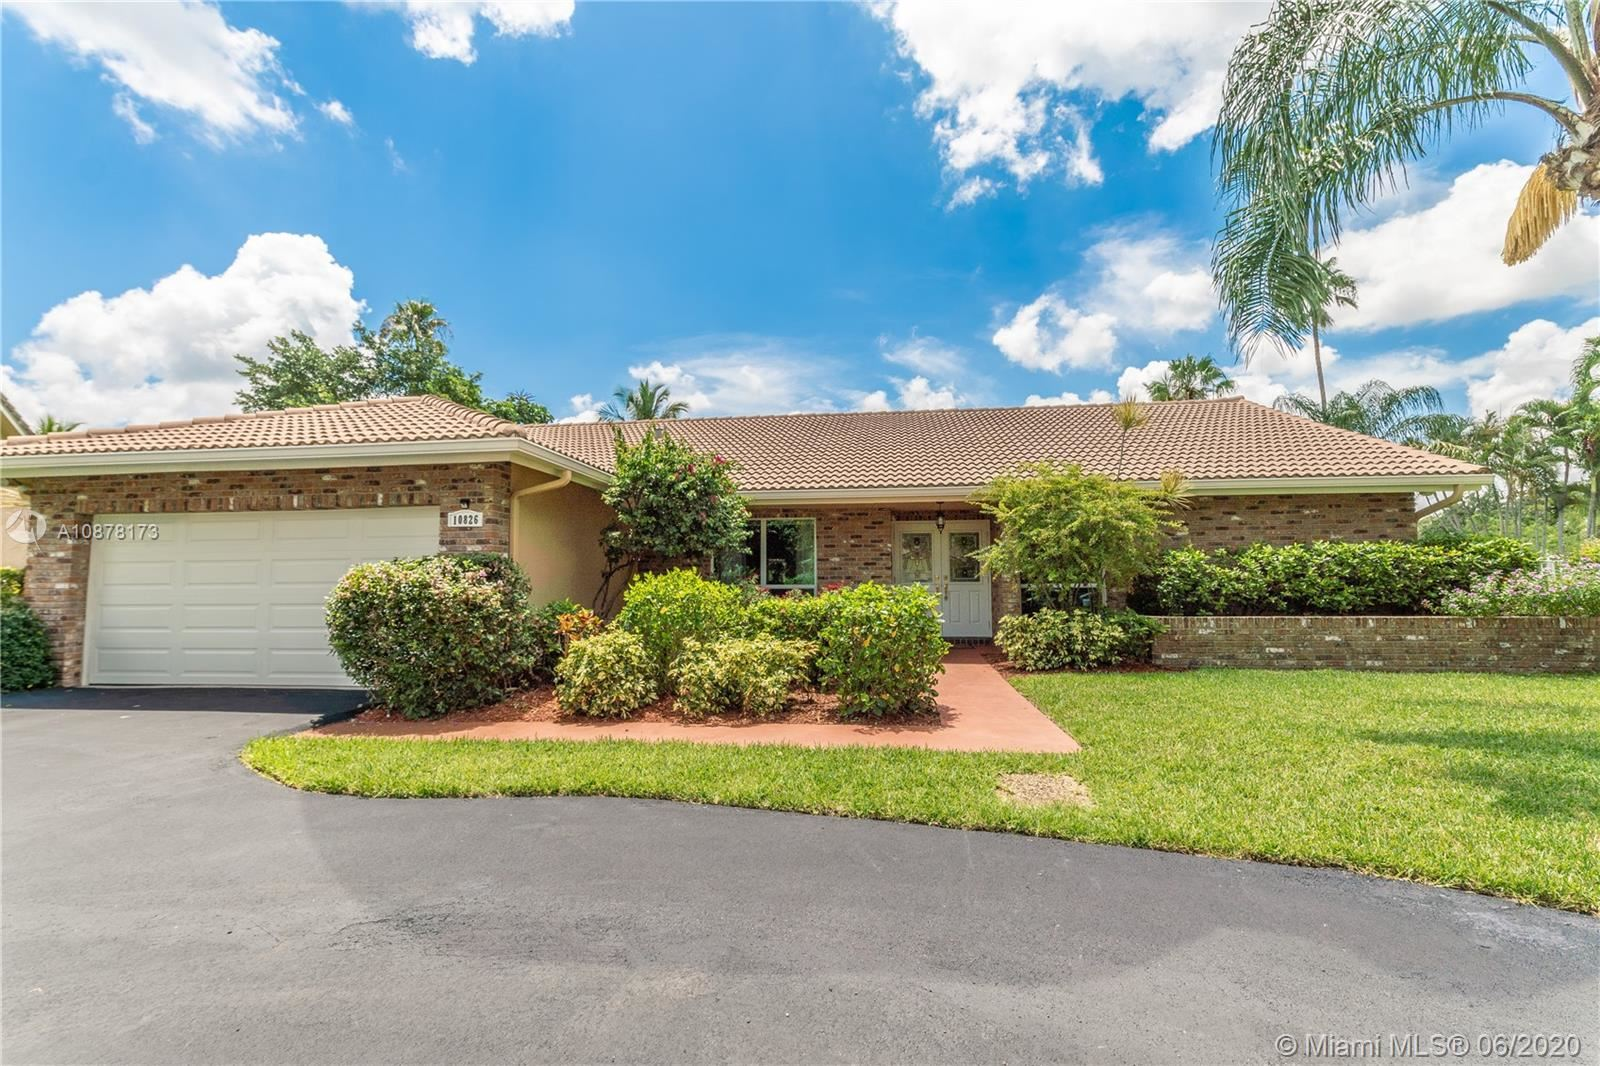 10826 NW 17th Mnr, Coral Springs, FL 33071 - #: A10878173